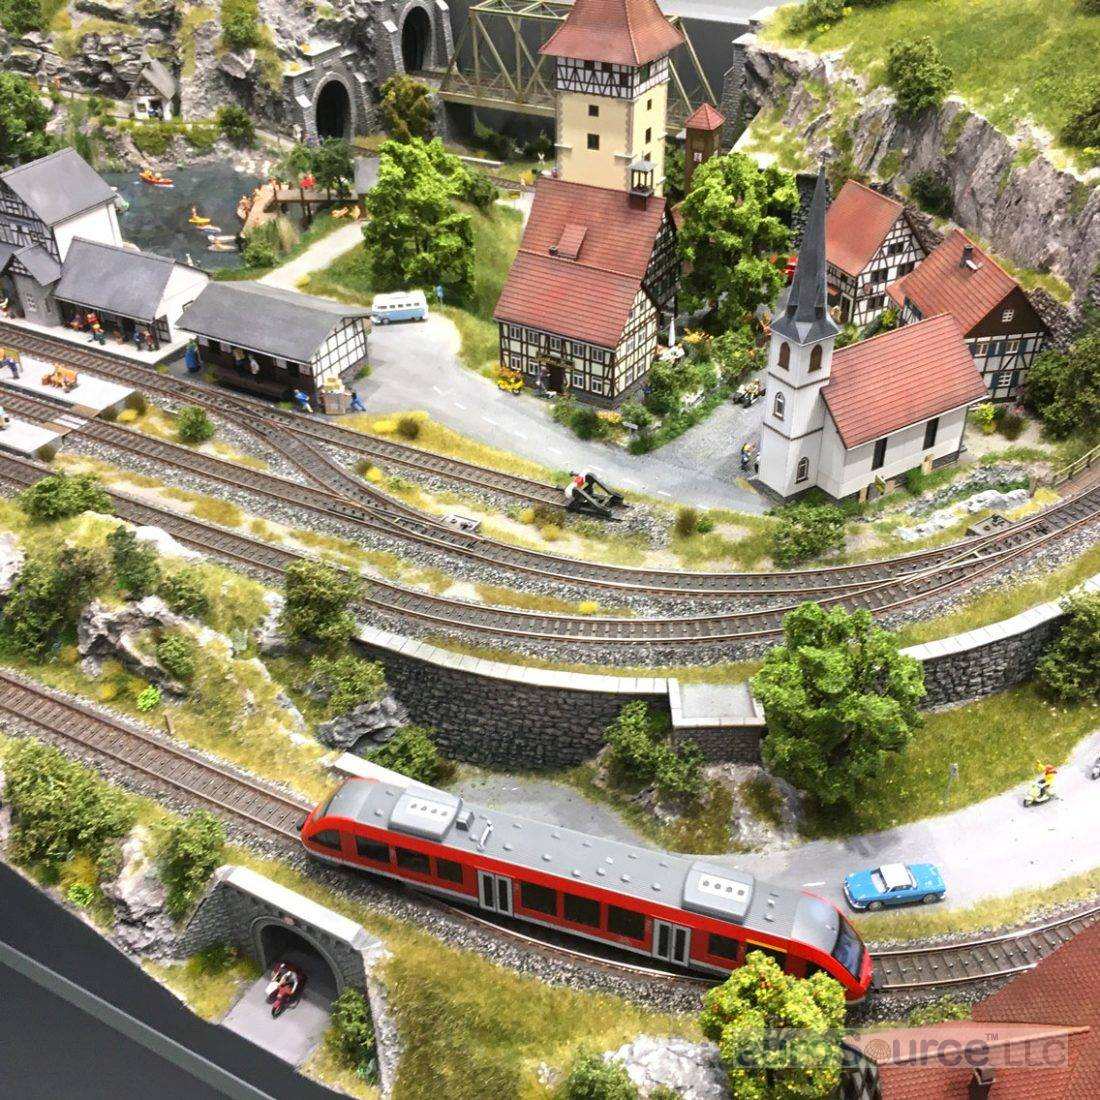 Toy trains and models